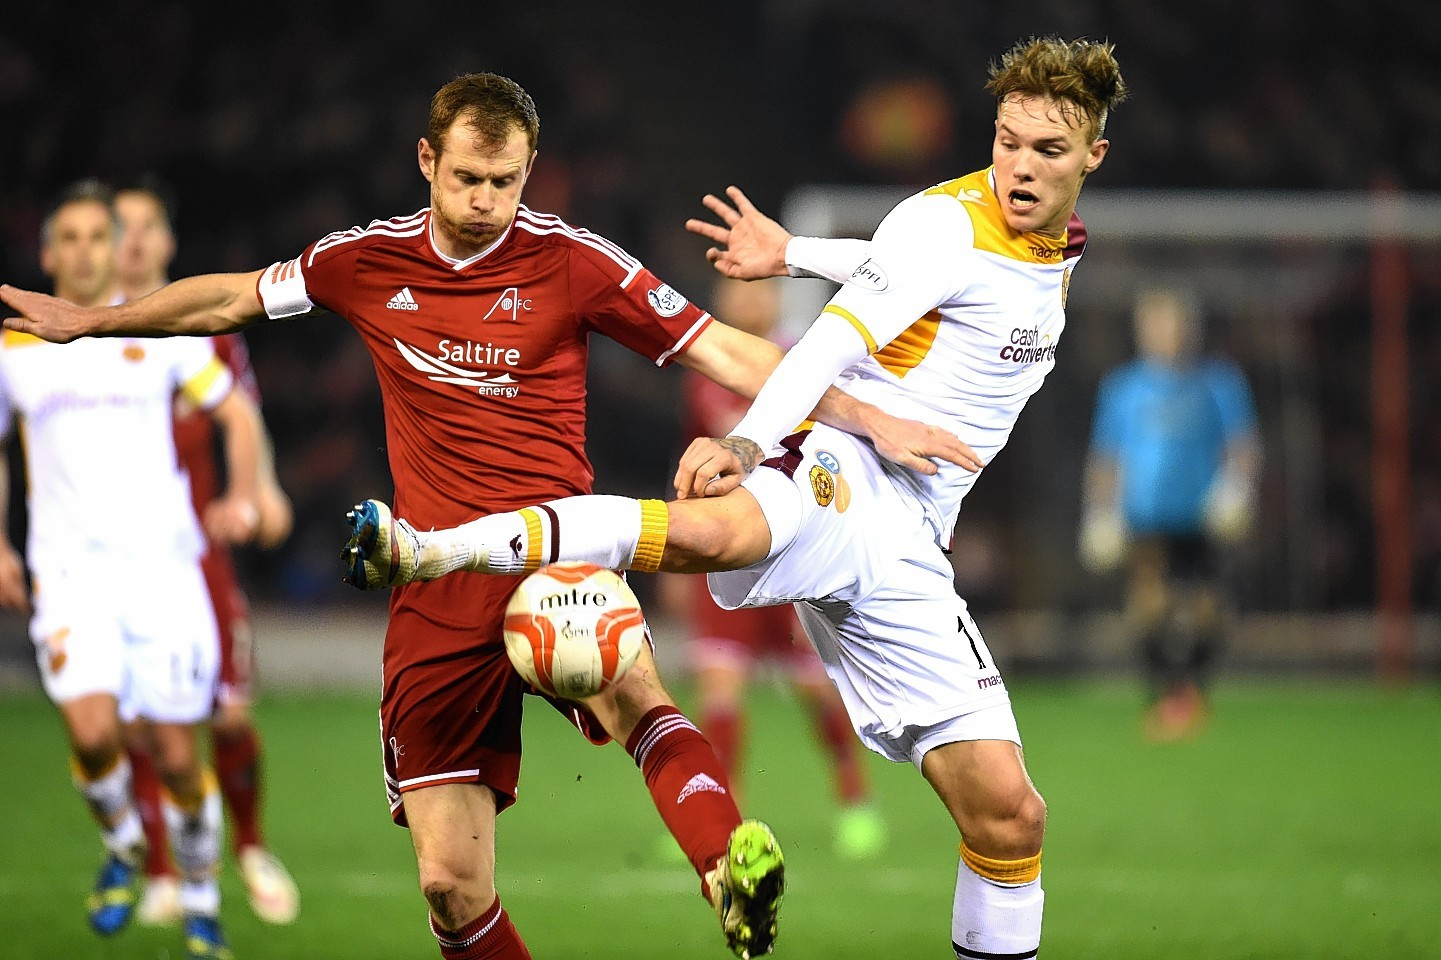 Reynolds has stepped up to the role of Dons captain this season